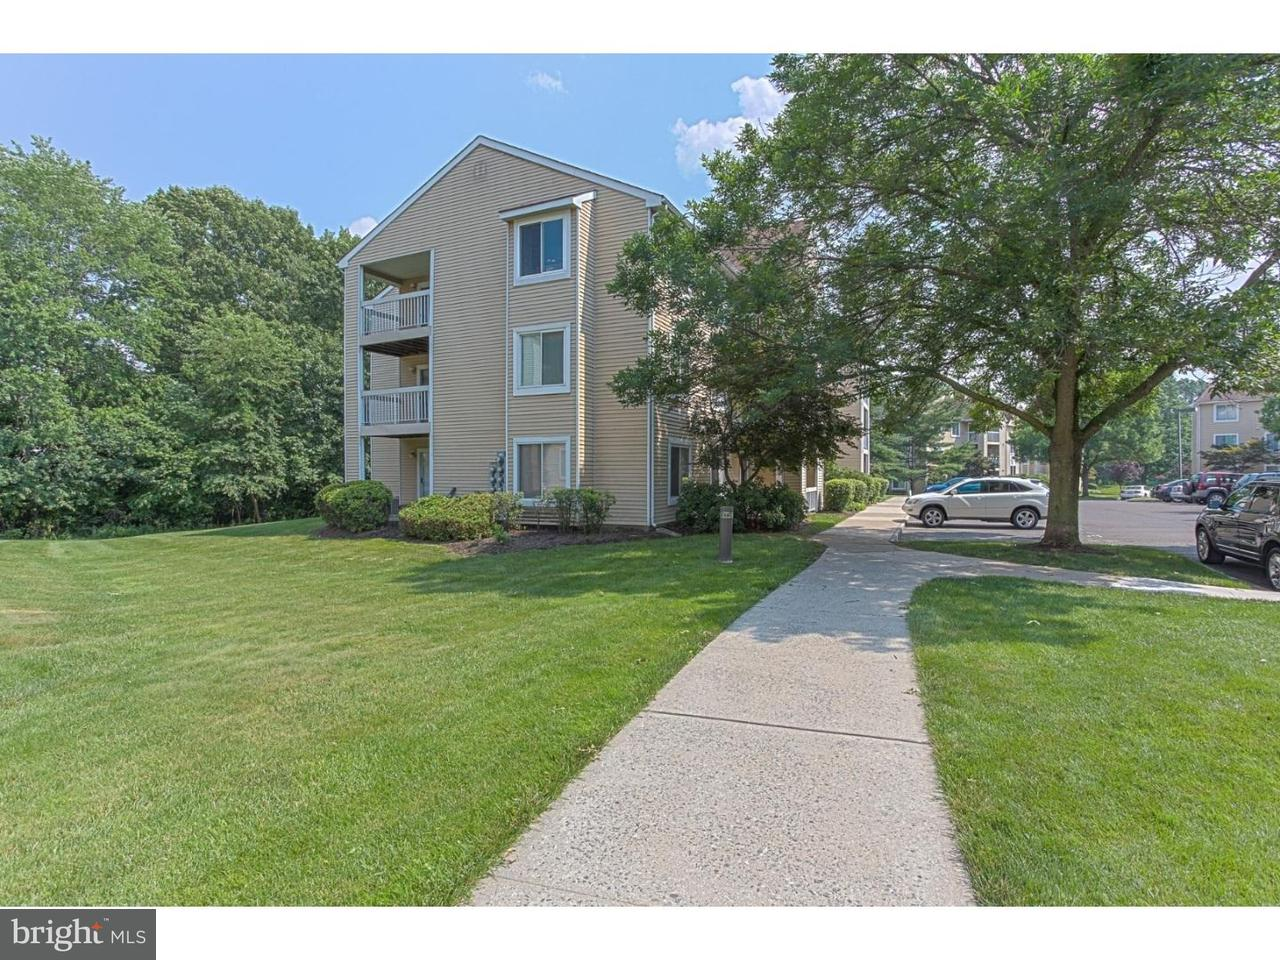 Condominium for Rent at 415 SILVIA Street Ewing, New Jersey 08628 United StatesMunicipality: Ewing Township